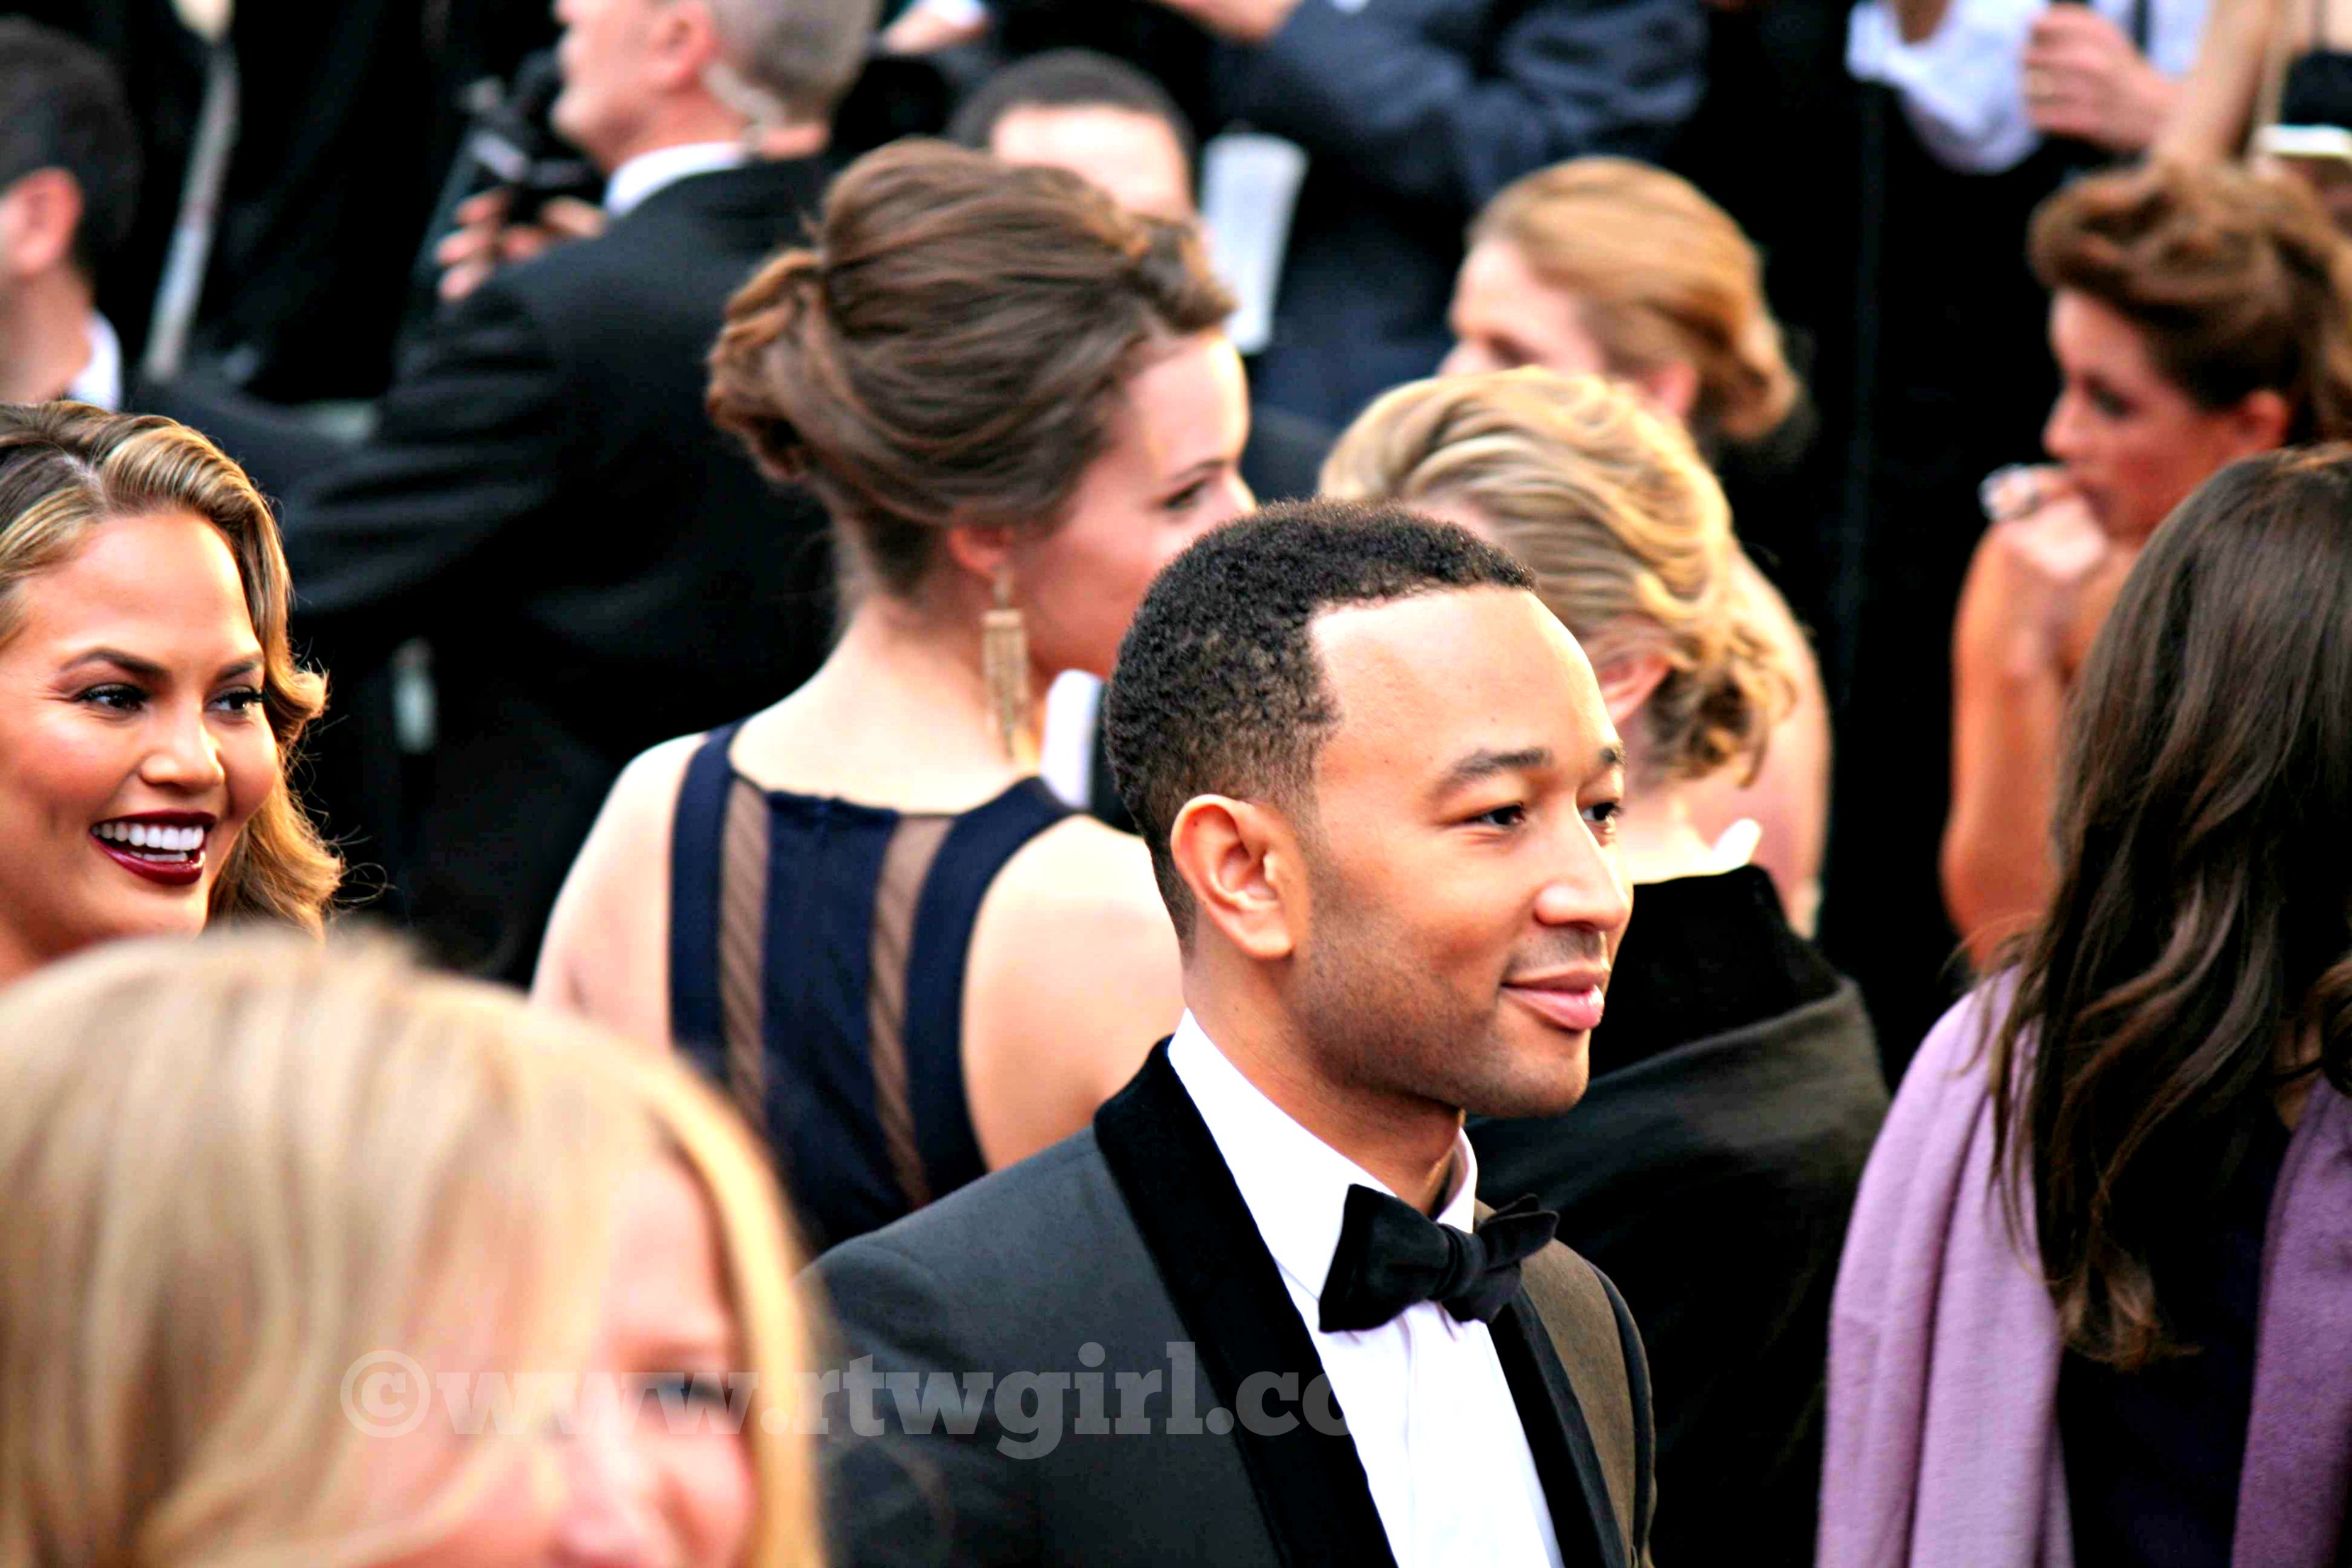 John Legend Chrissy Teigen Oscars Red Carpet 2015